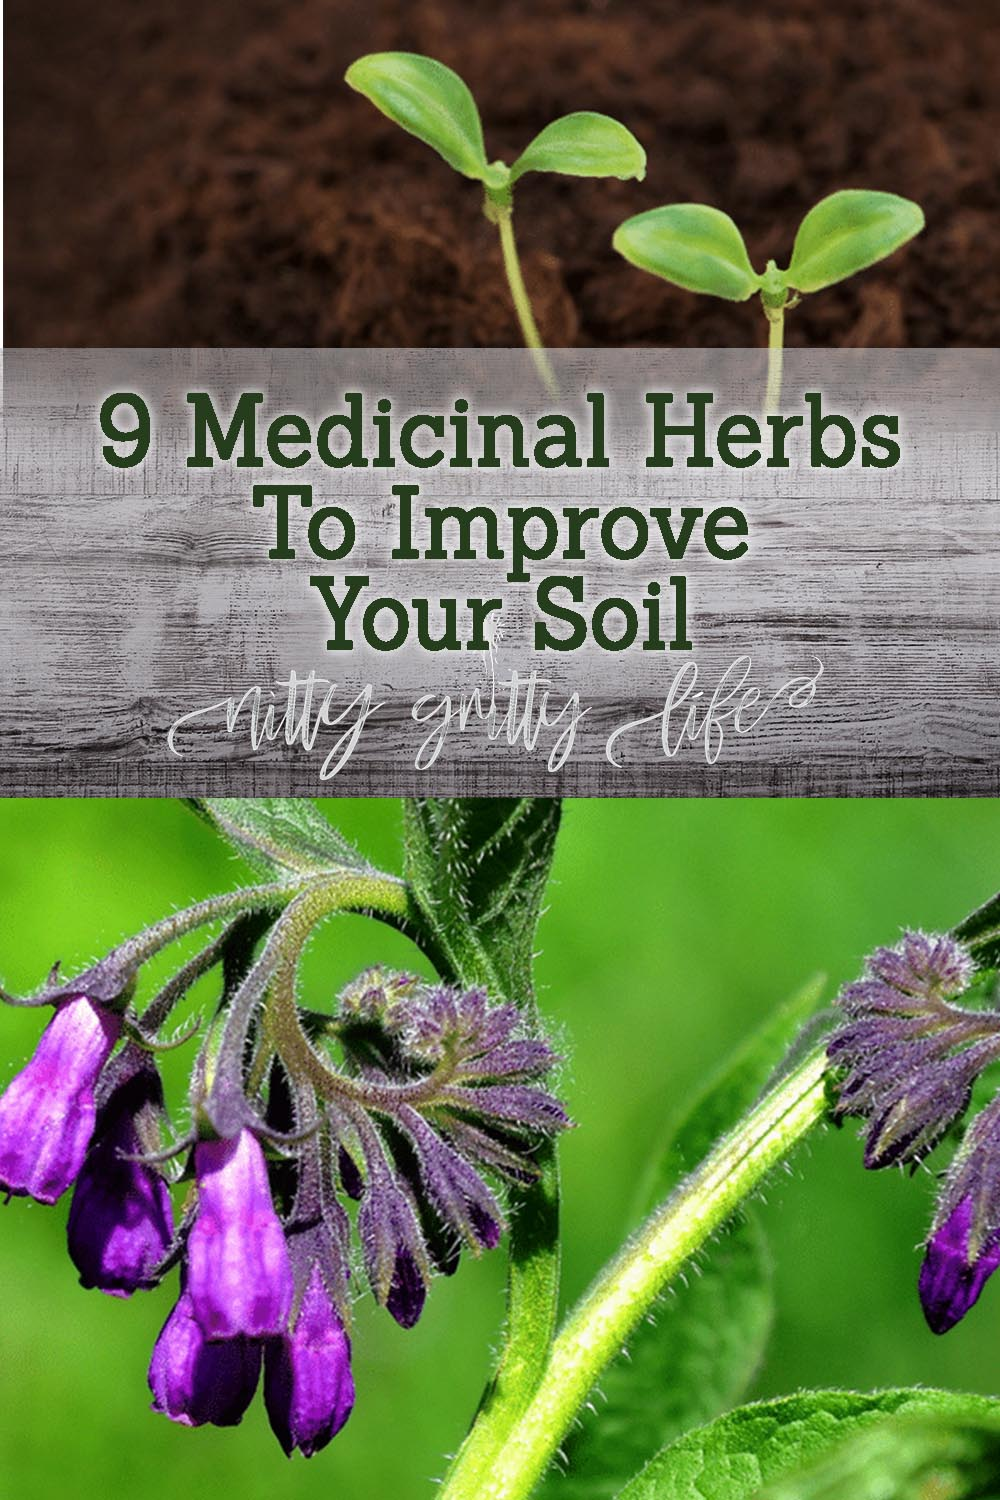 Herbs to Improve Your Soil